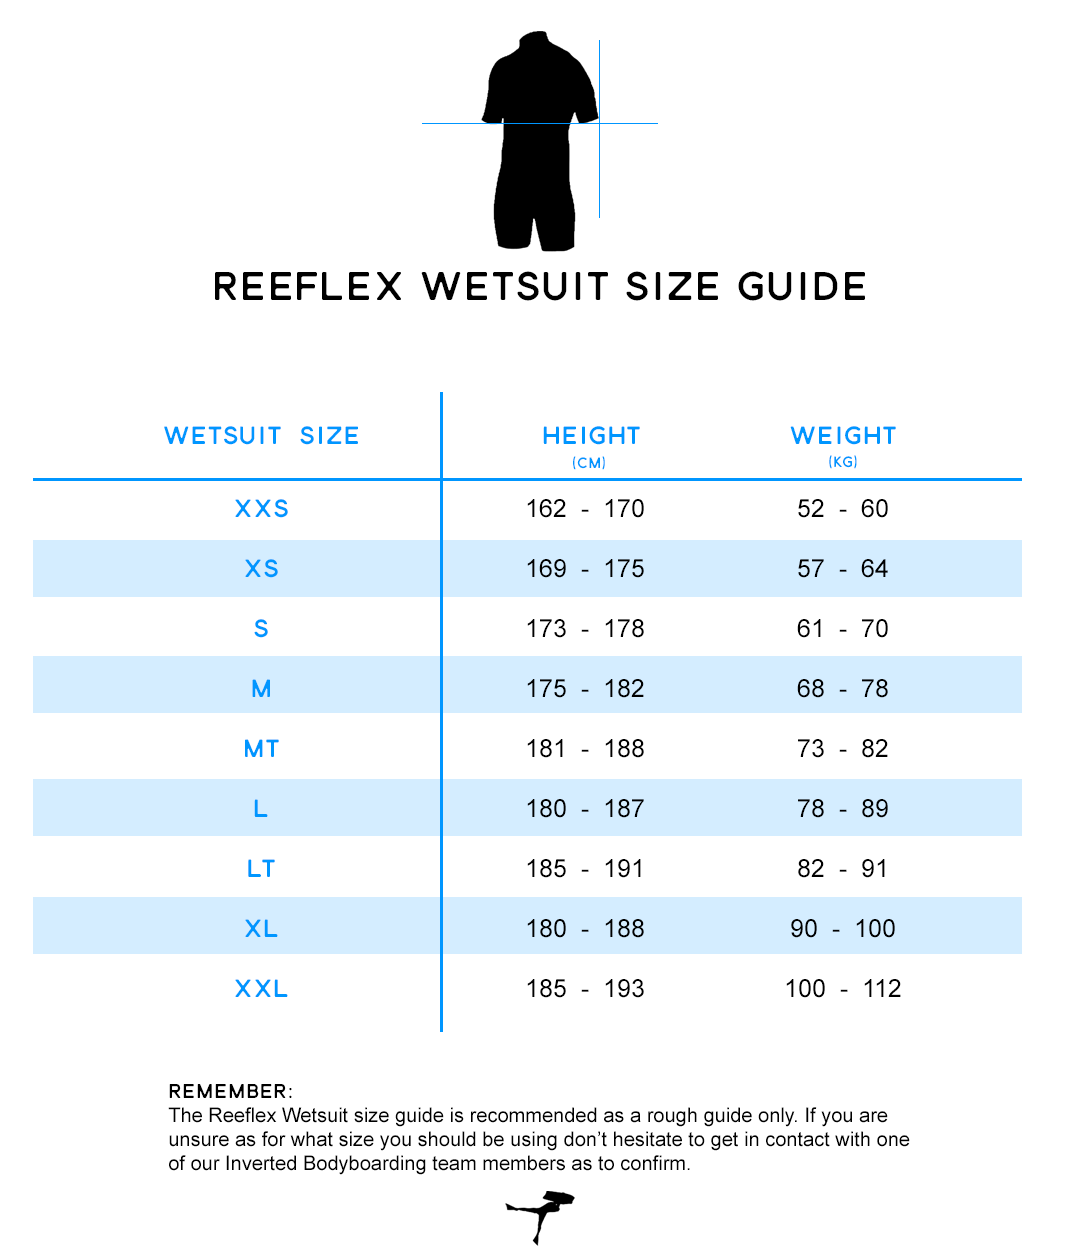 Reeflex Wetsuits Size Guide at Inverted Bodyboarding